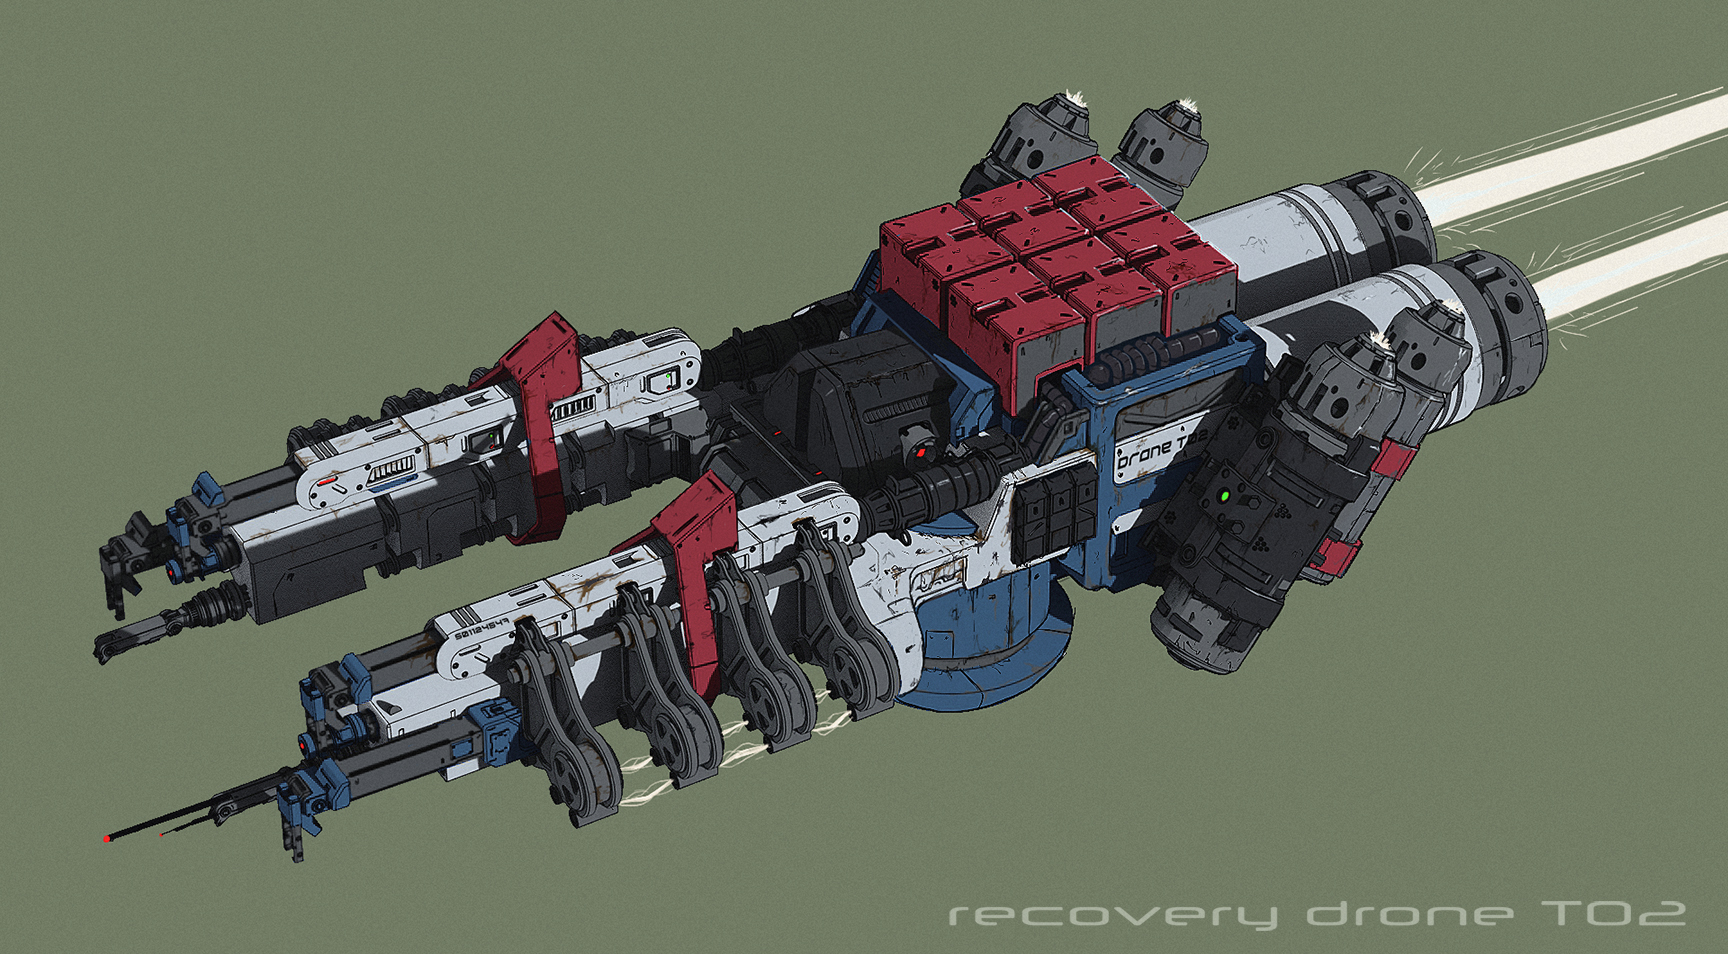 Recovery Drone Ship